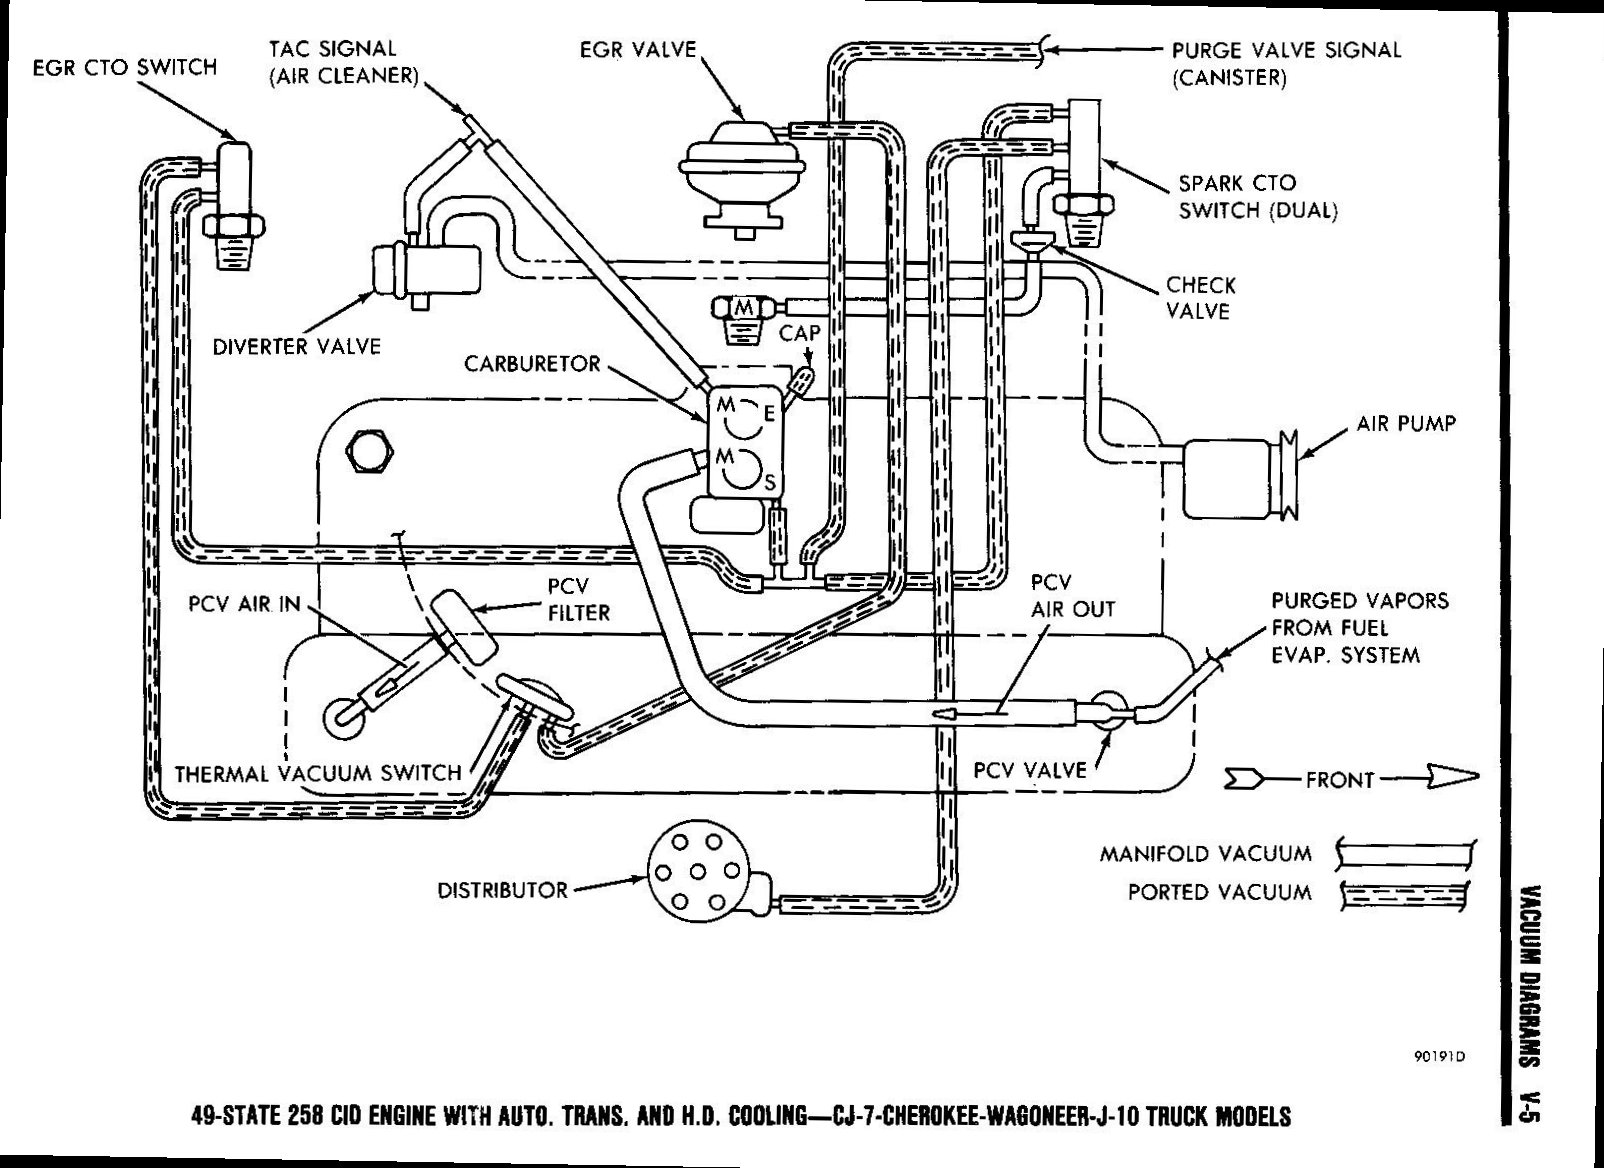 hight resolution of jeep cj5 fuel line diagram wiring diagram for you 77 cj5 fuel diagram cj5 exhaust system